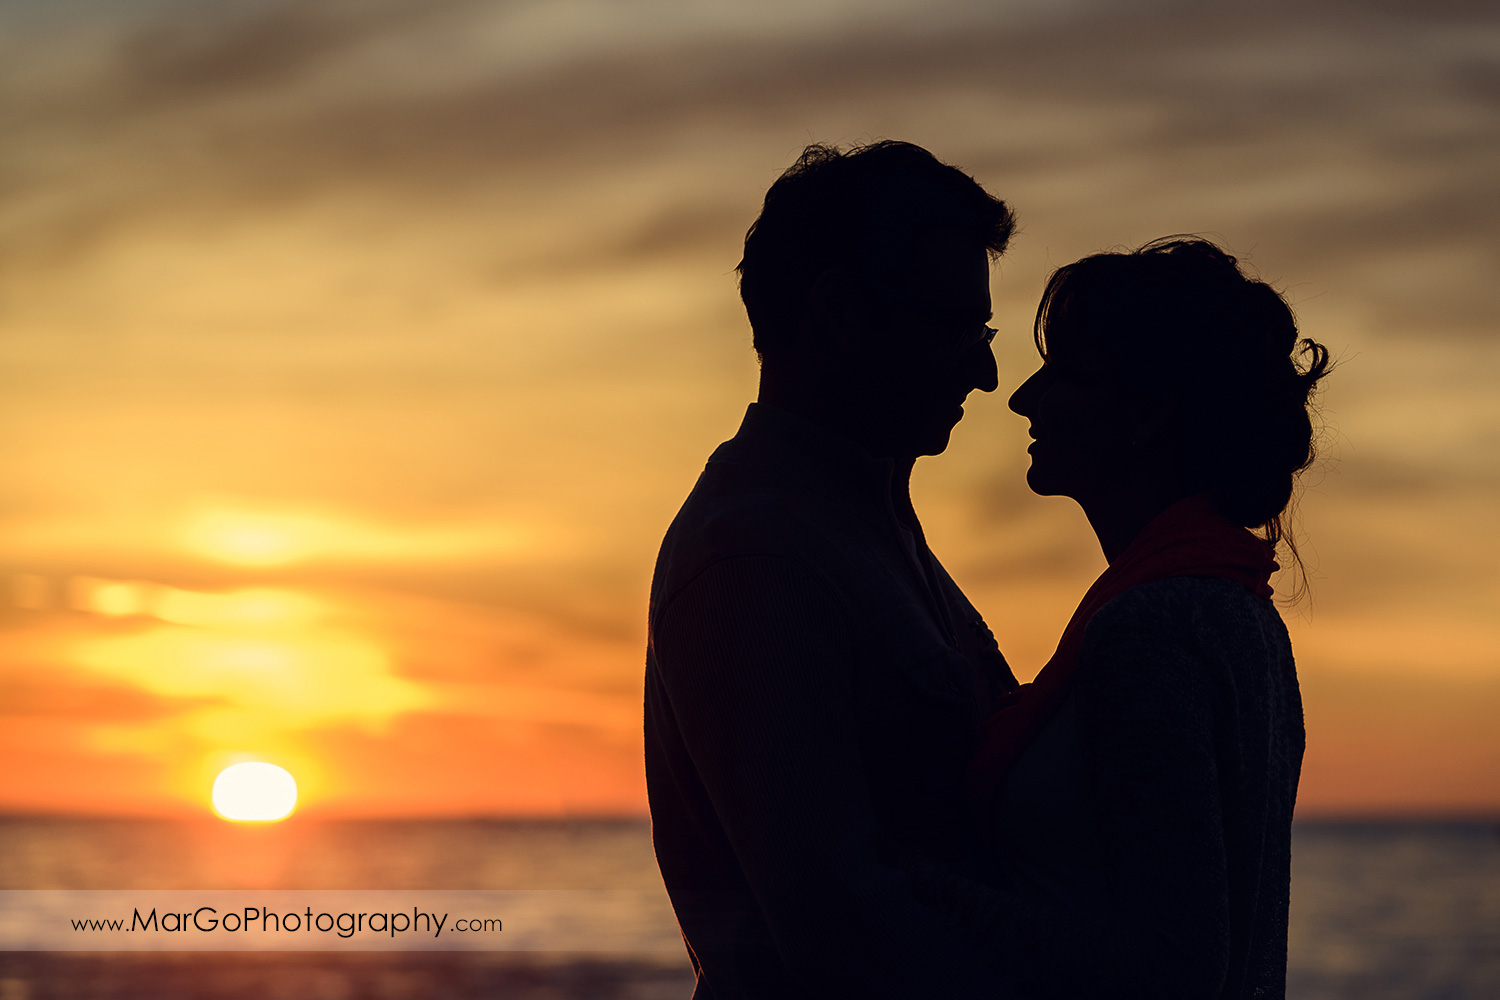 silhouette of man and woman looking at each other during sunset engagement session at San Francisco Baker Beach